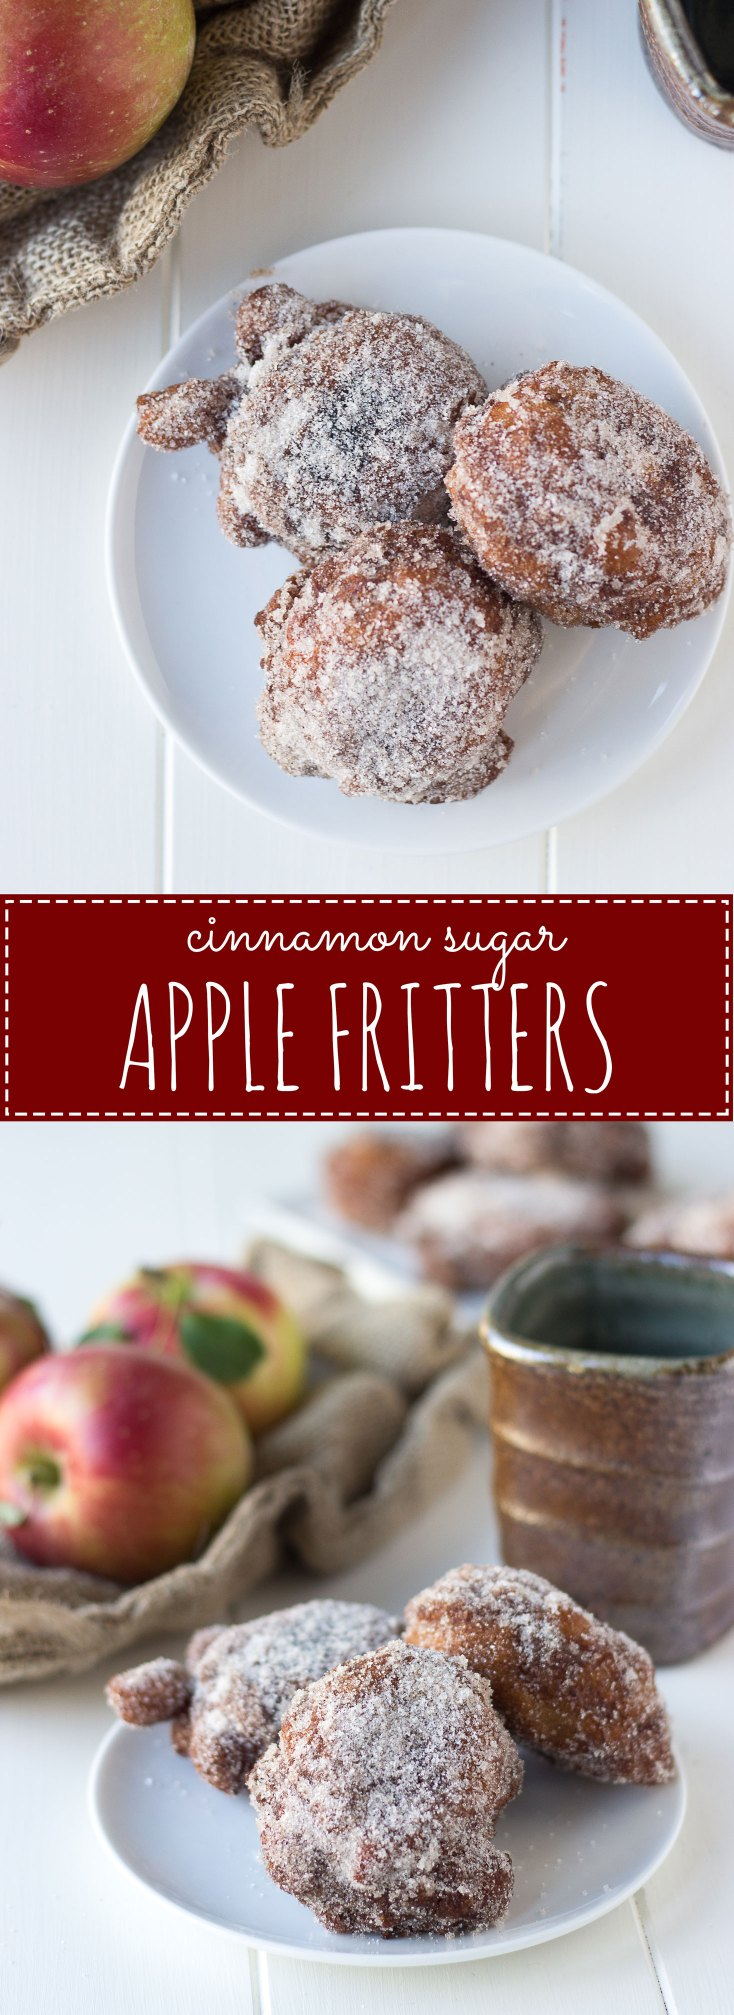 Cinnamon Sugar Apple Fritters - a fall brunch recipe that's sure to please; sweet and tart apple bits in a light, cinnamon batter, fried to a crisp exterior and coated in cinnamon sugar.